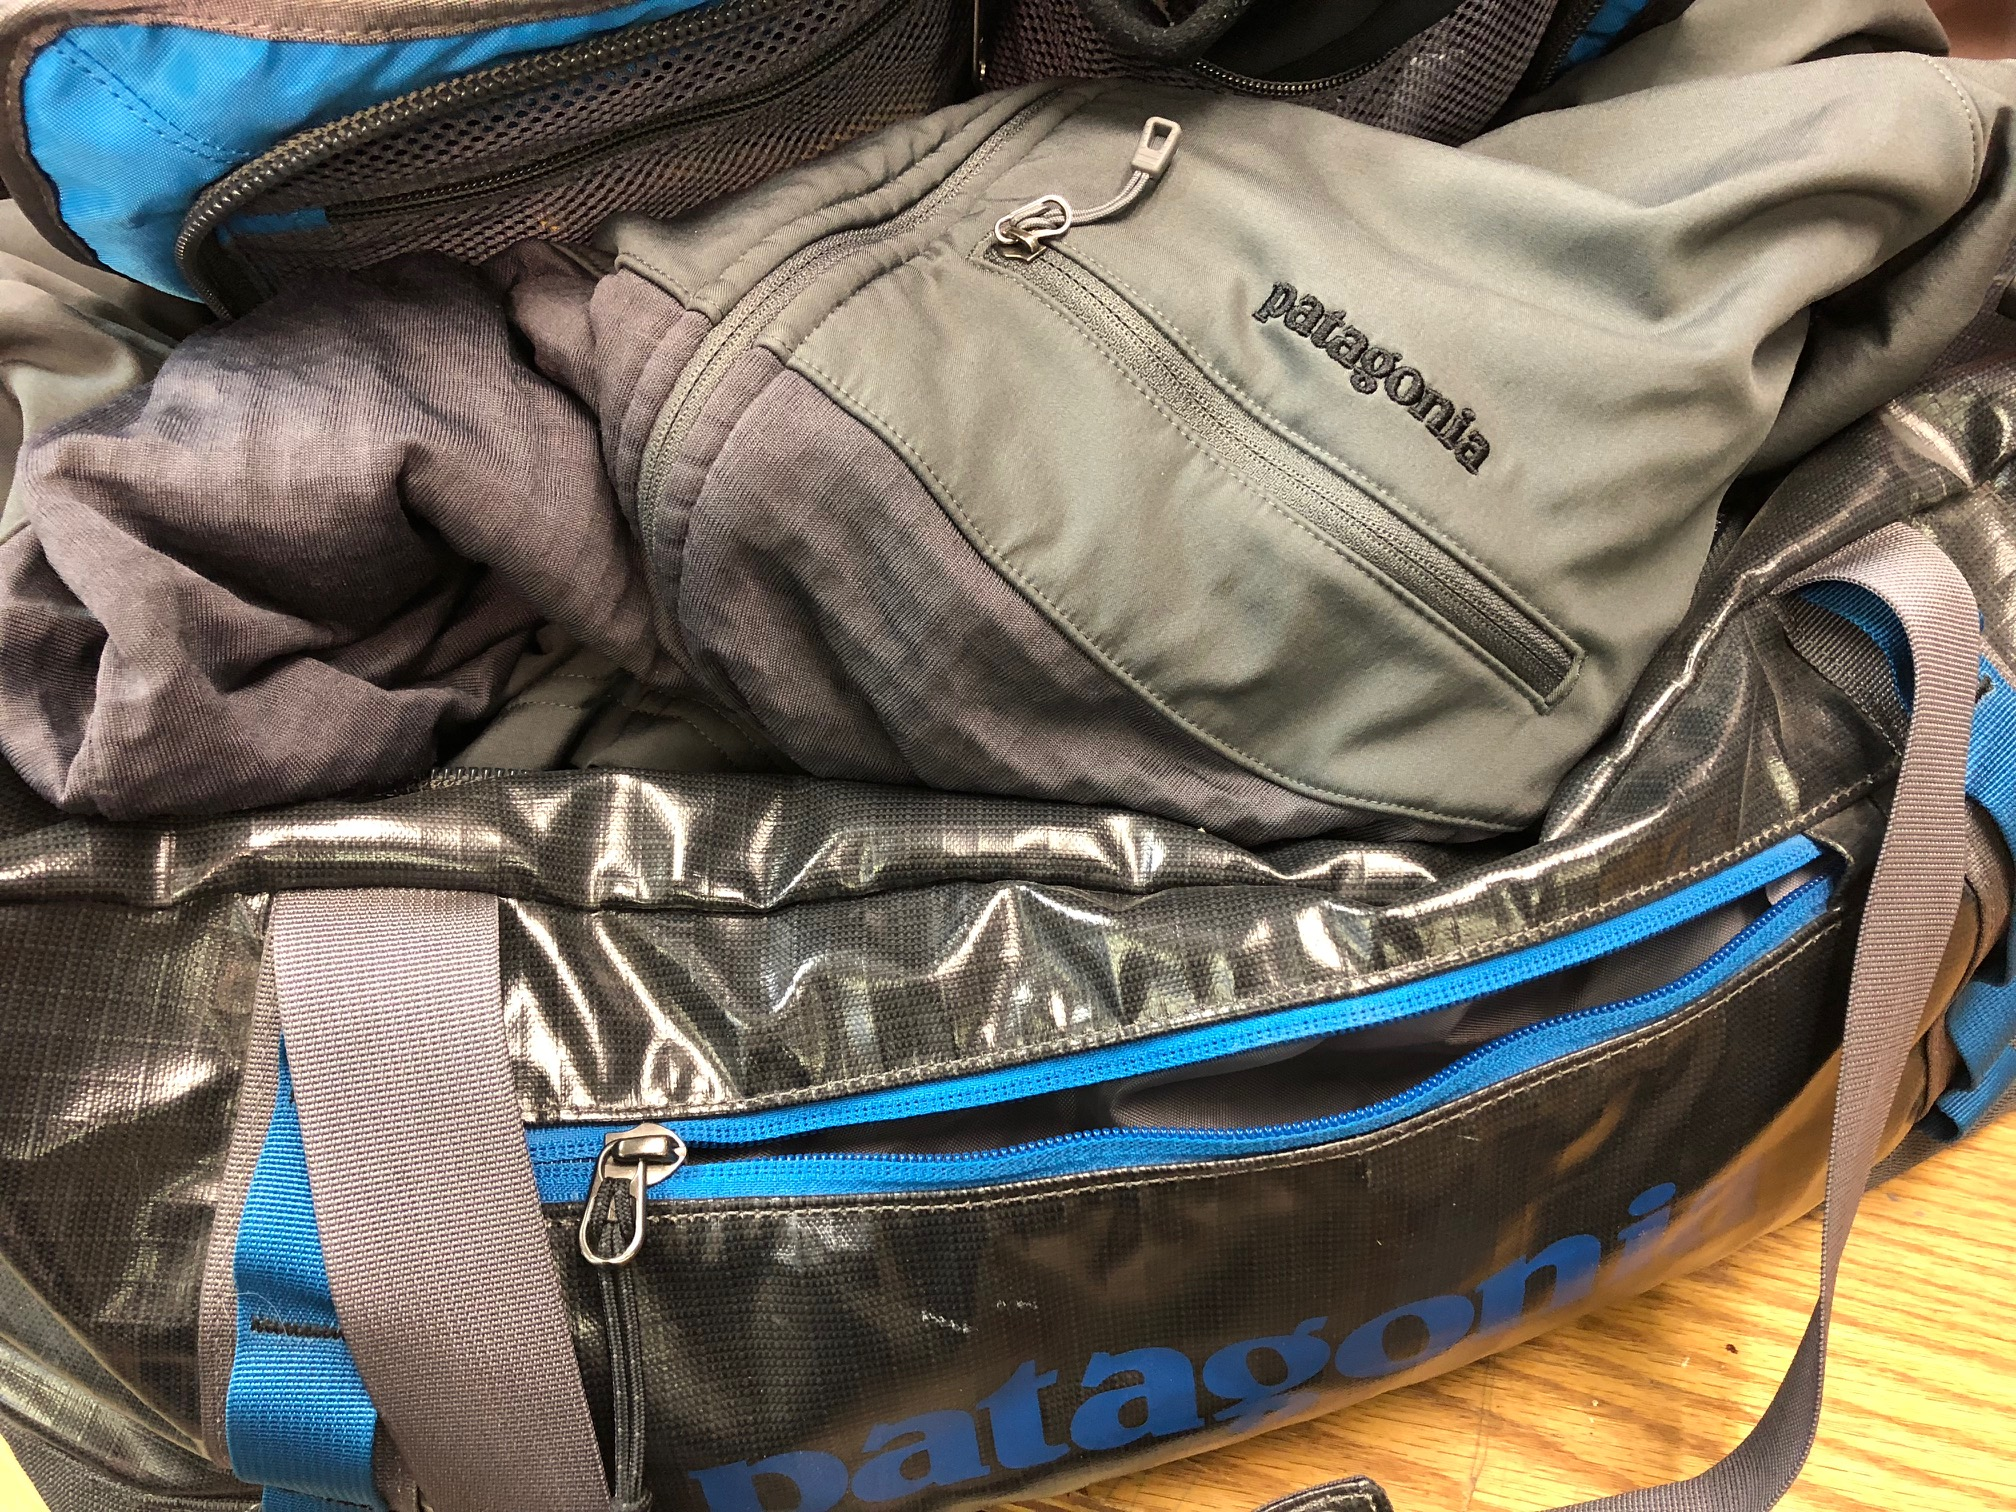 Patagonia Gear (Bags and Underwear)